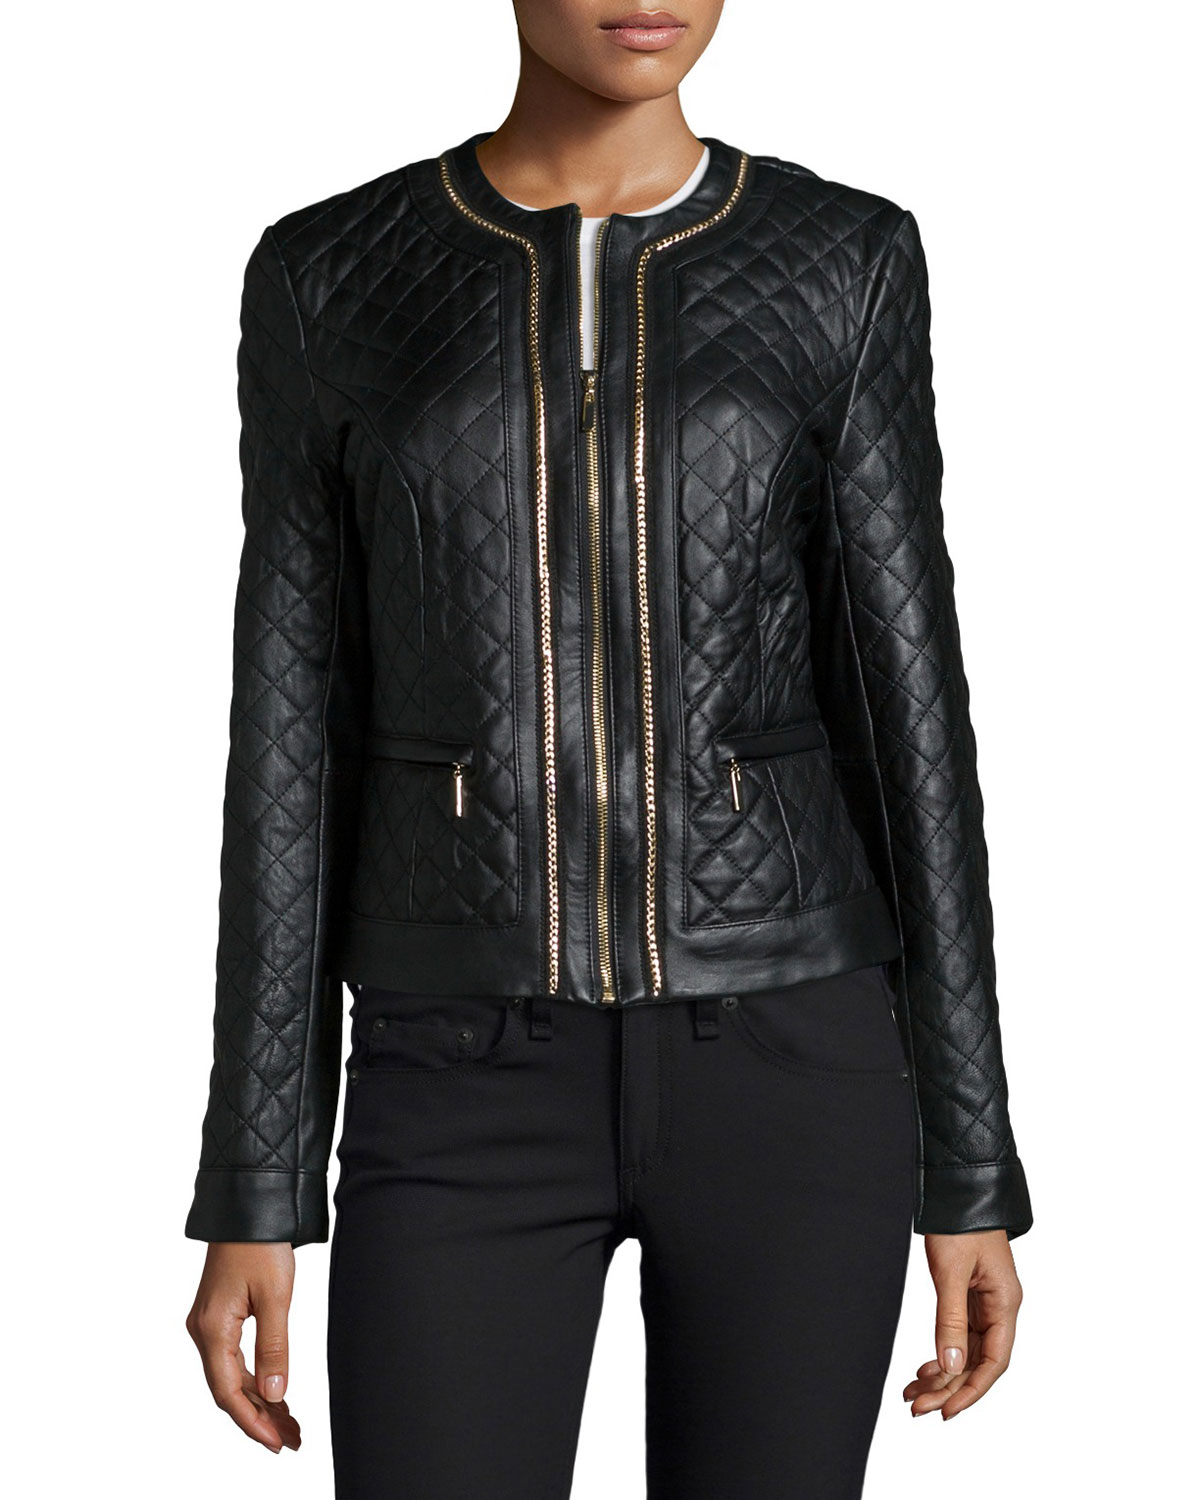 Quilted Leather Jacket W/ Chain Trim, Size: LARGE(12-14), BLACK - Neiman Marcus